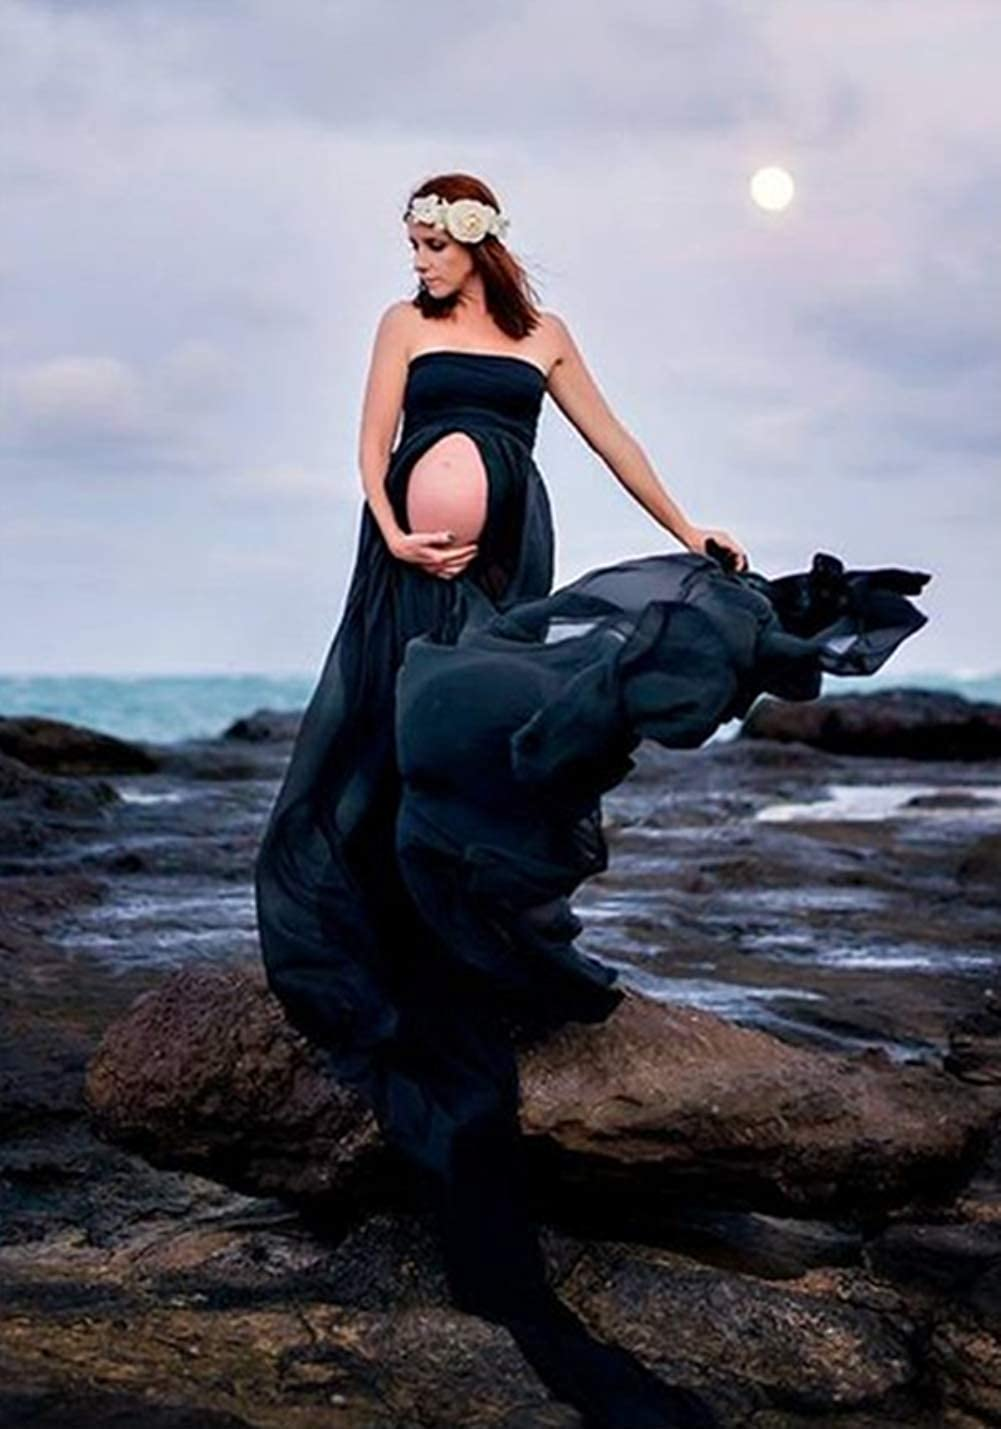 ZIUMUDY Maternity Chiffon Strapless Maxi Photography Dress Split Front Gown for Photoshoot